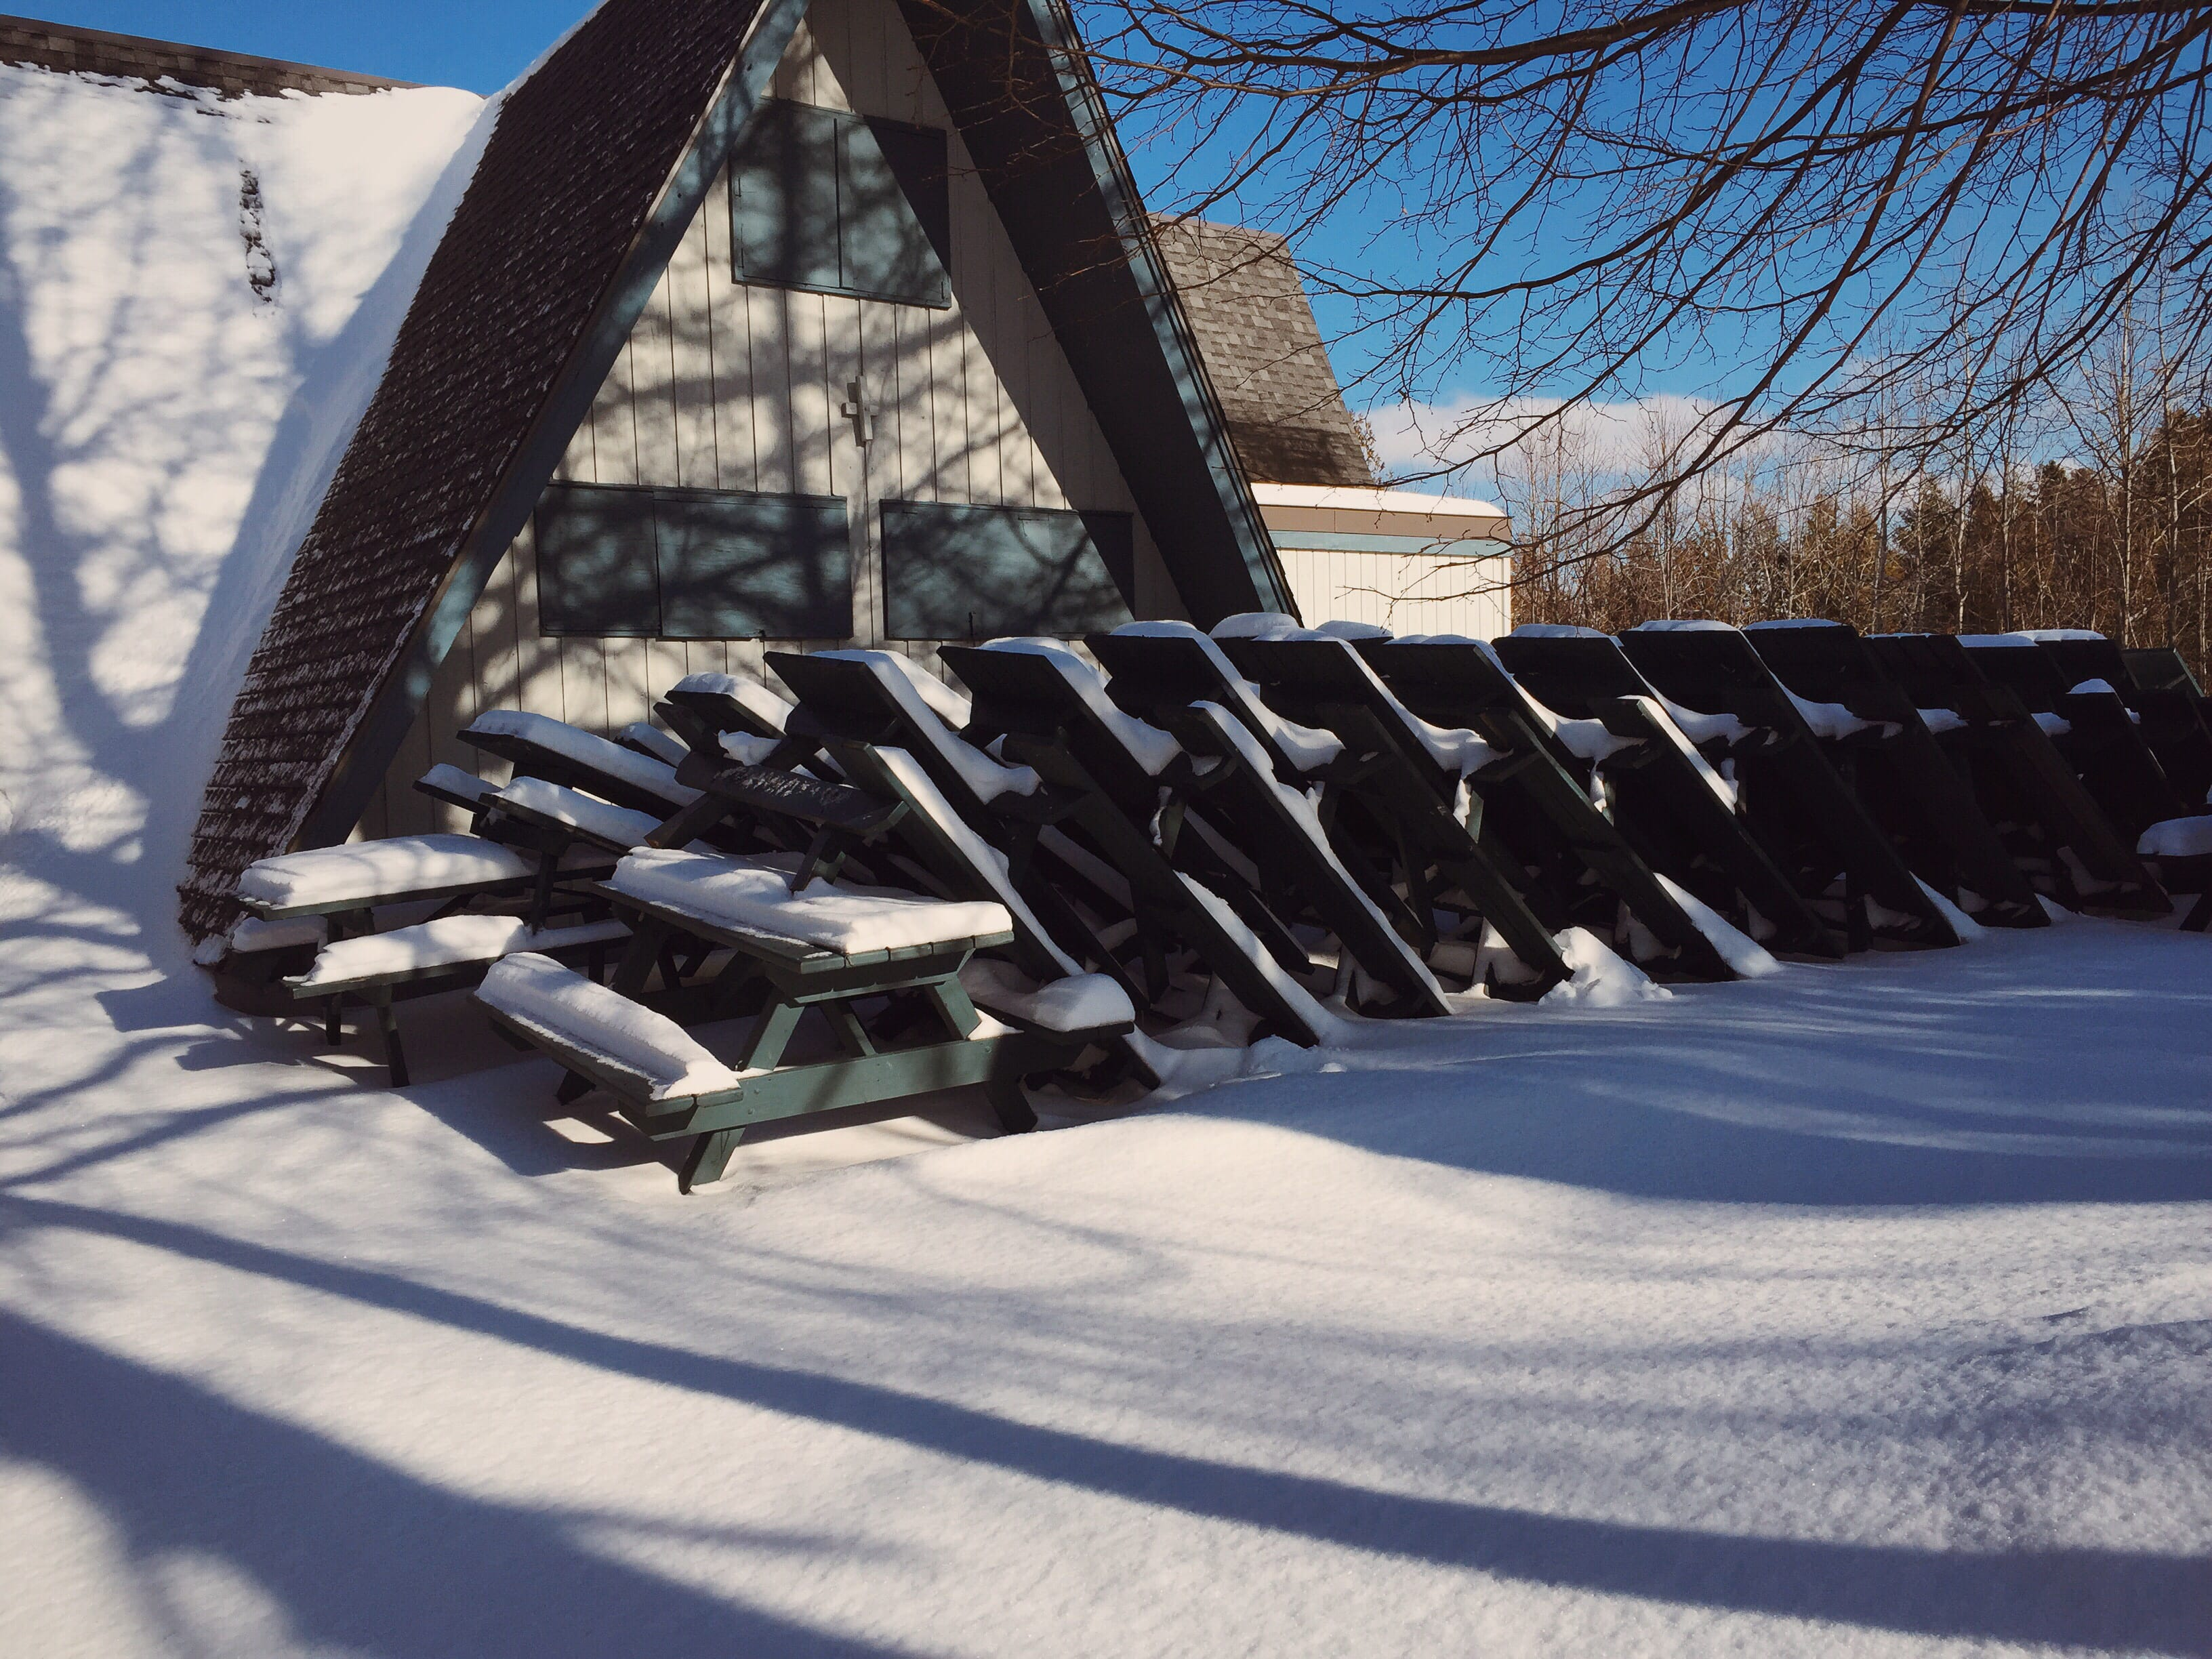 A photograph depicting Patio Tables Stacked for the Season Rockwood Park Sj